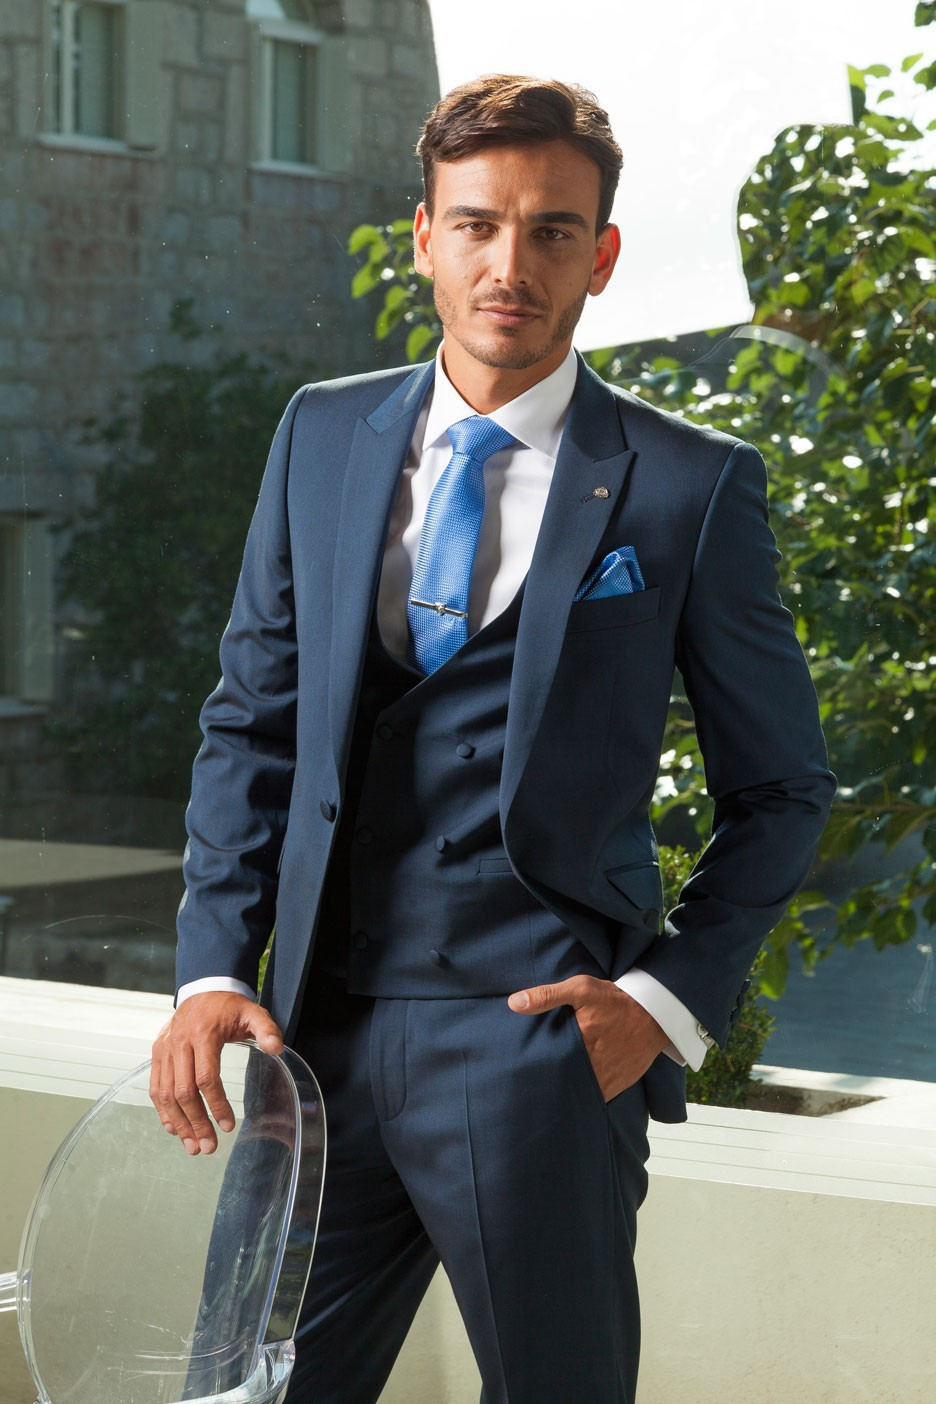 2017 New Arrival Navy Blue Wool Suit Customized Wedding Suits For Men Groom Tuxedos Groomsman Jacket Pants Tie Vest In From S Clothing